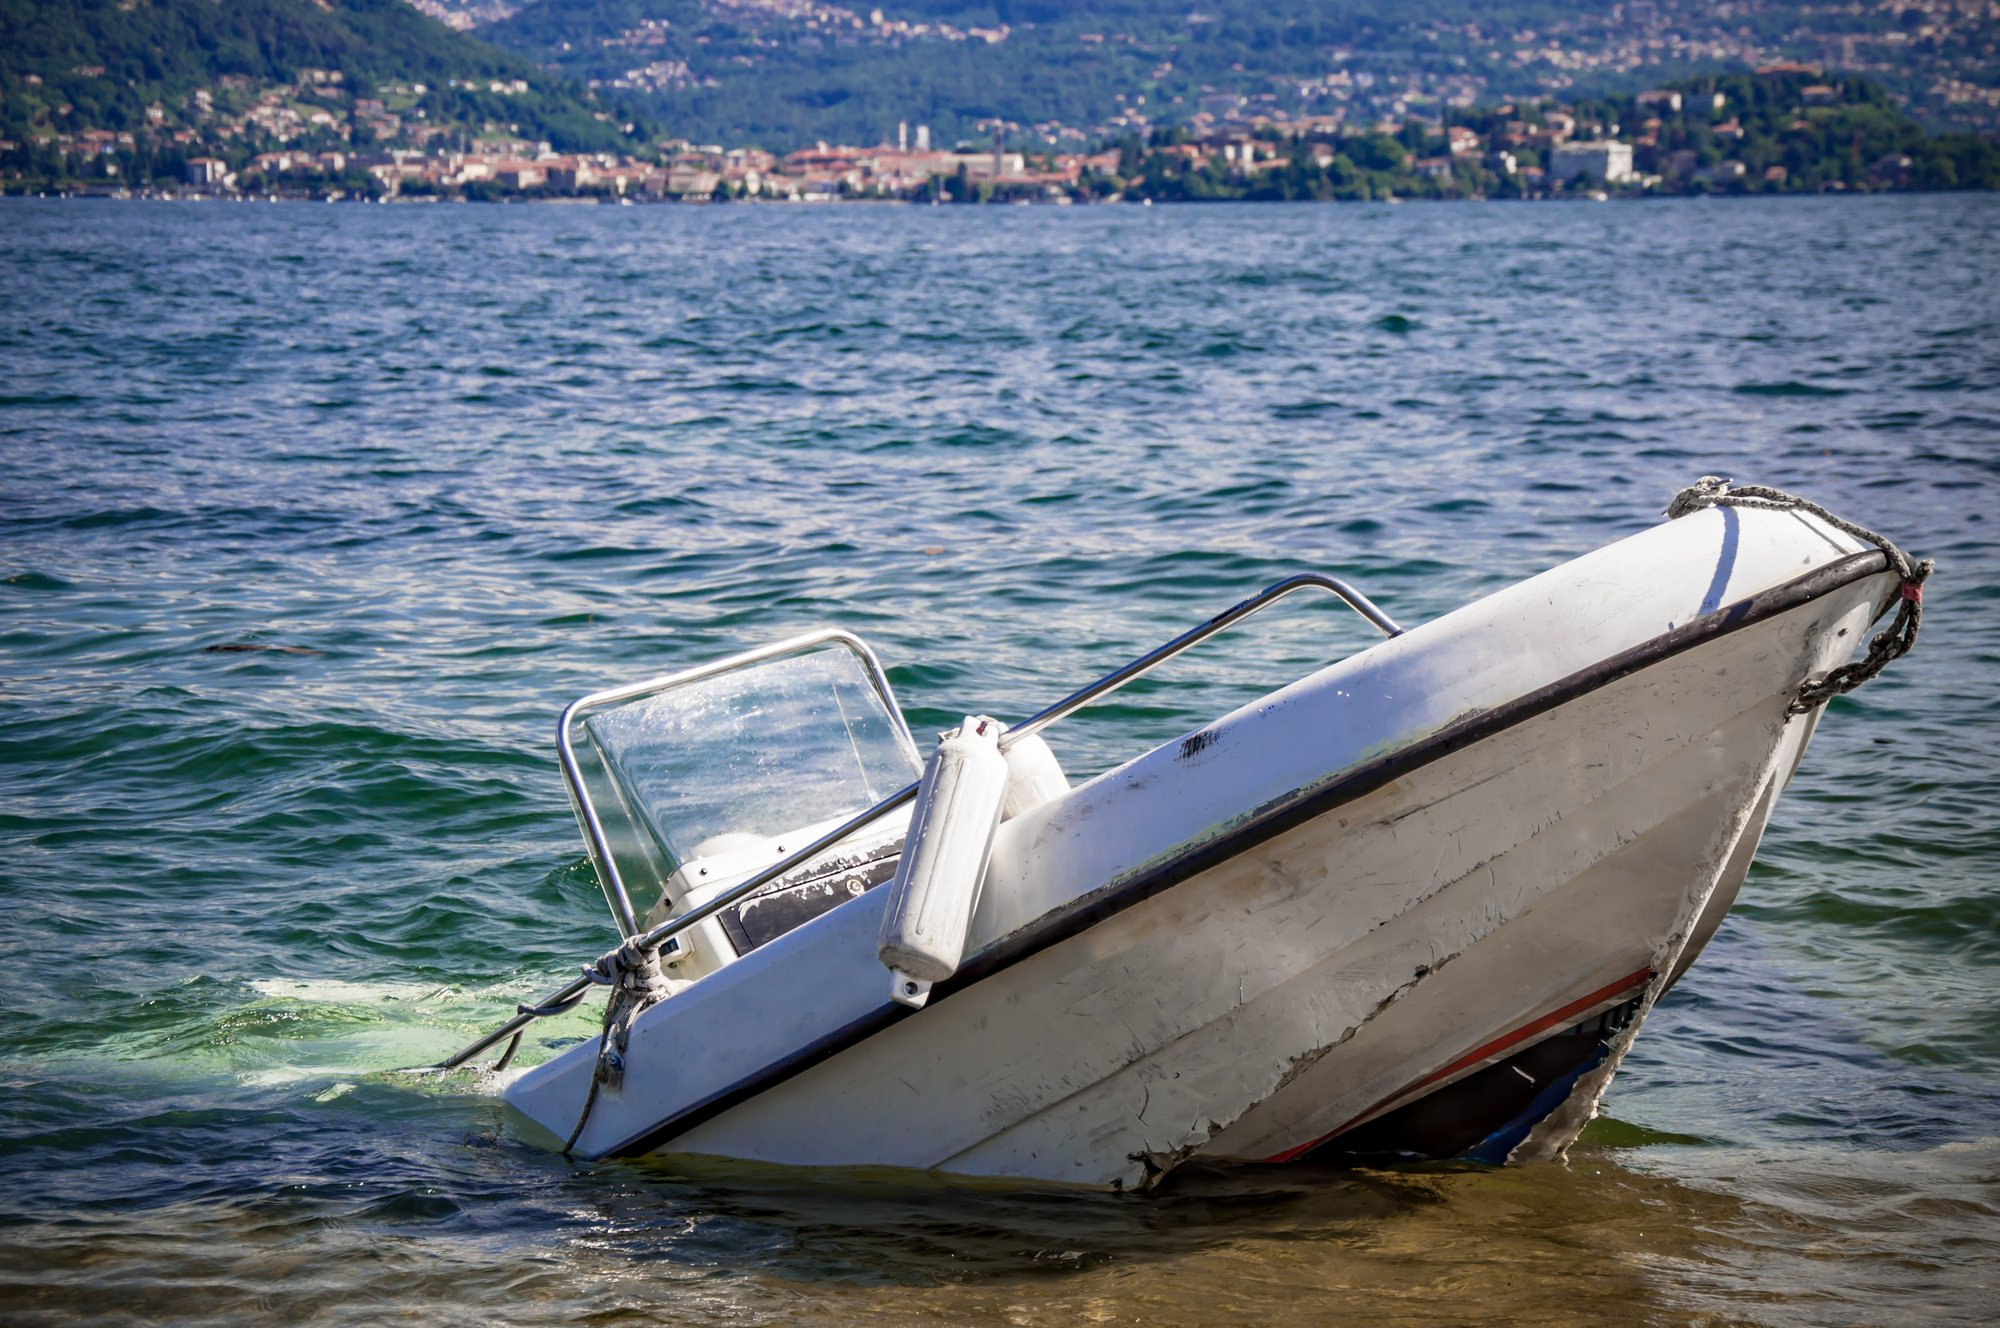 Boat Accident Claims in Idaho: An Overview